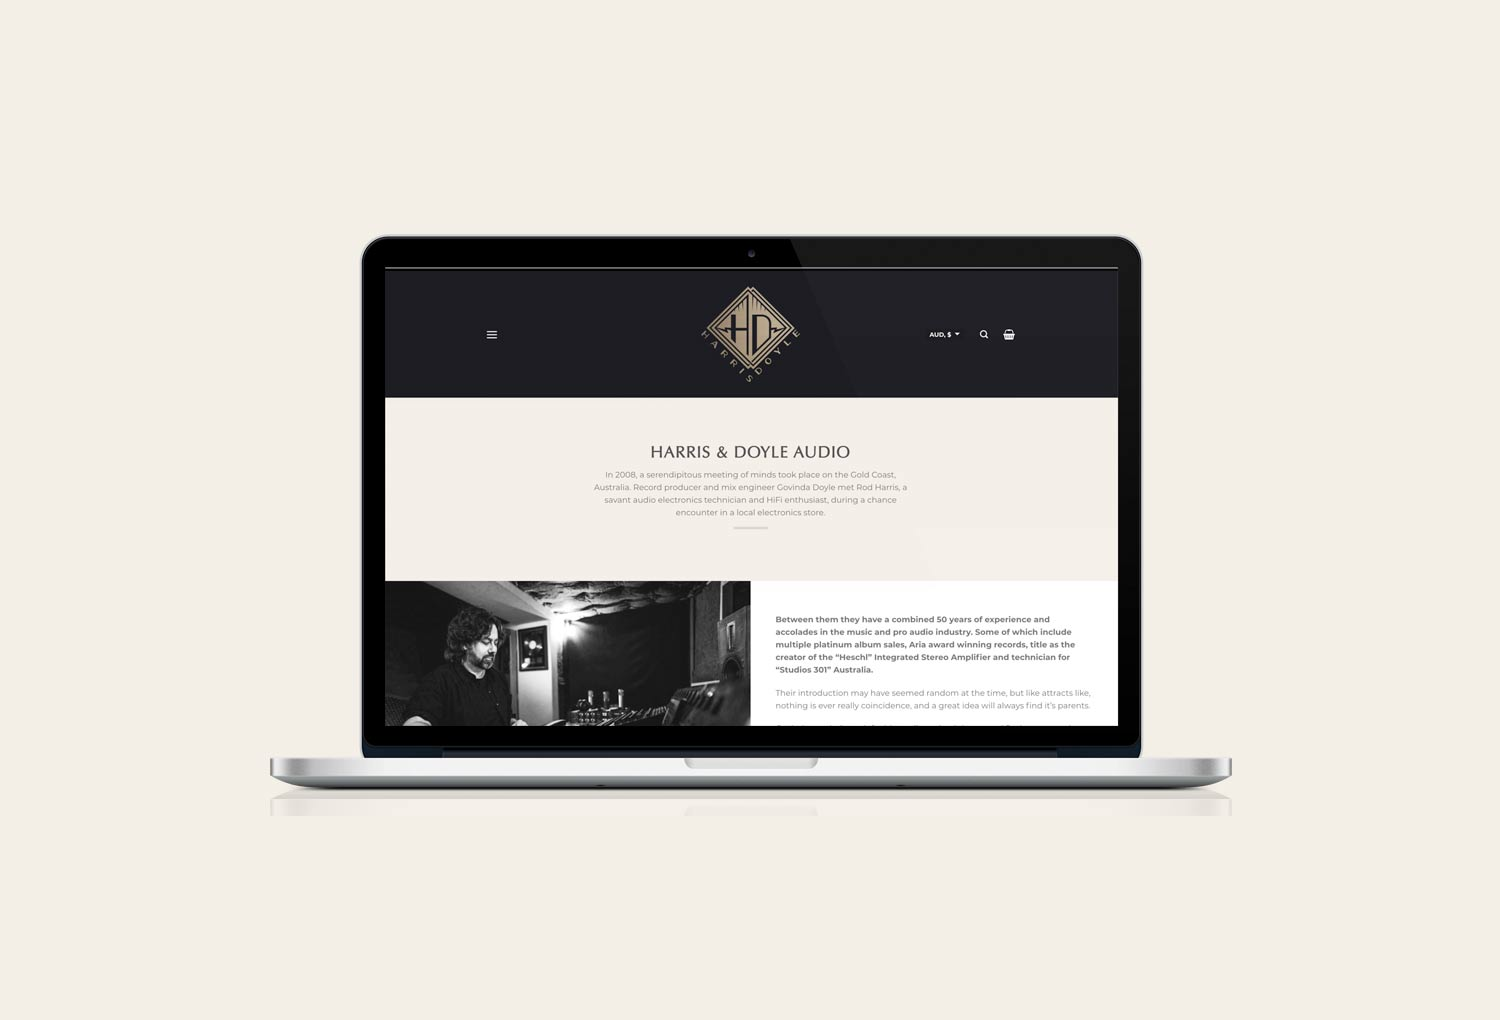 Harris Doyle Audio About Page Website Design By Mango Tree Media